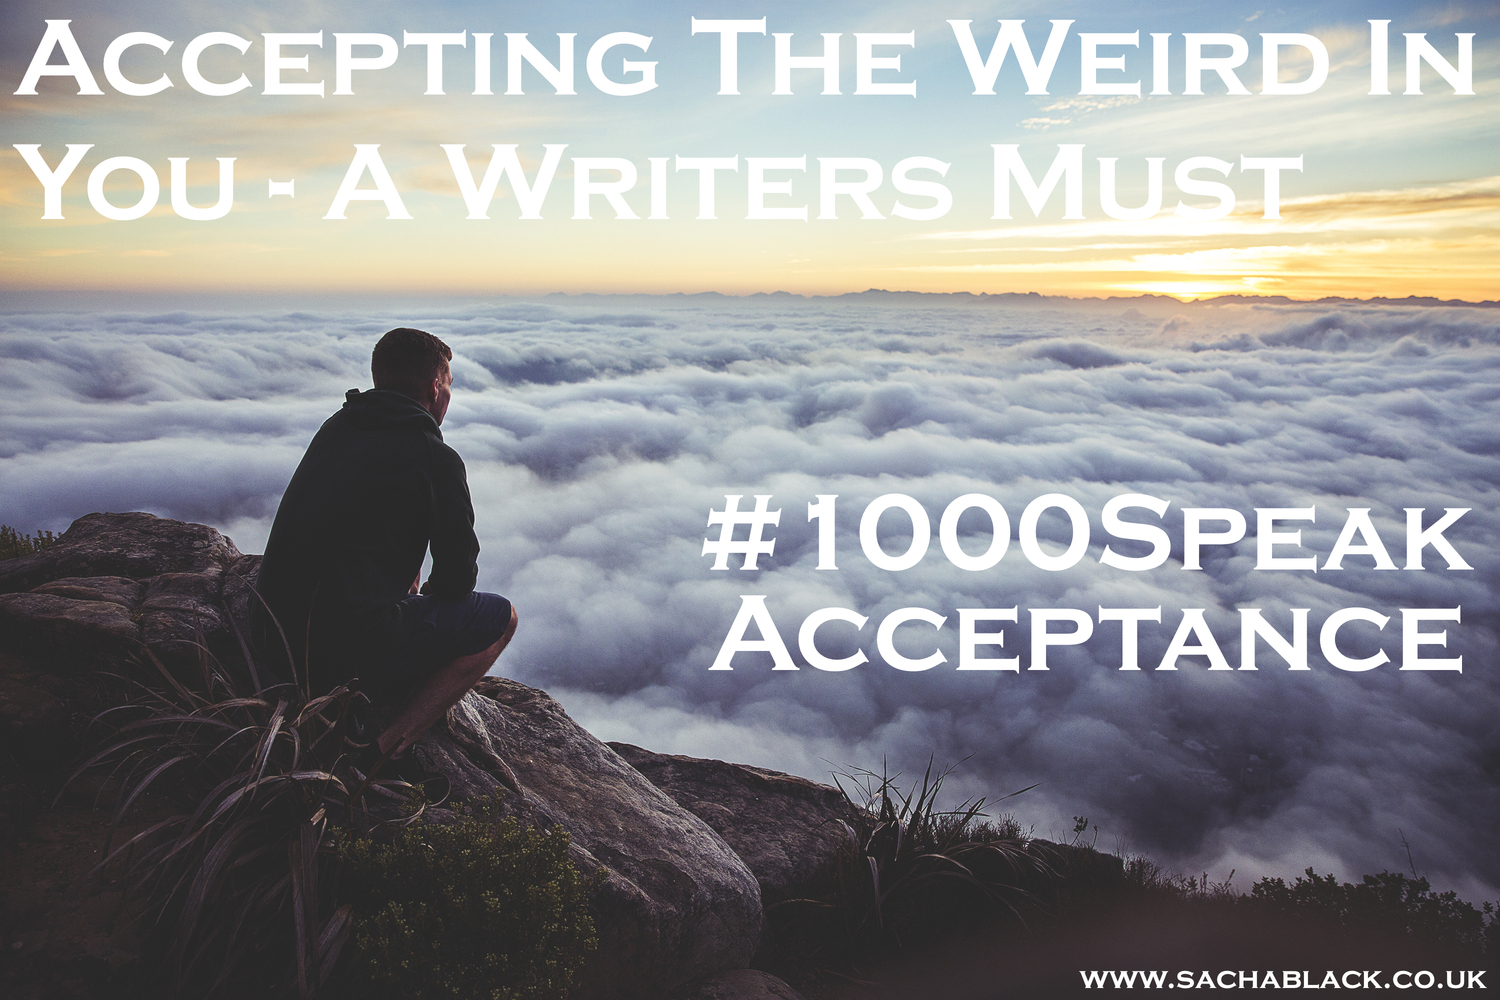 Accepting the weird in you - a writers must